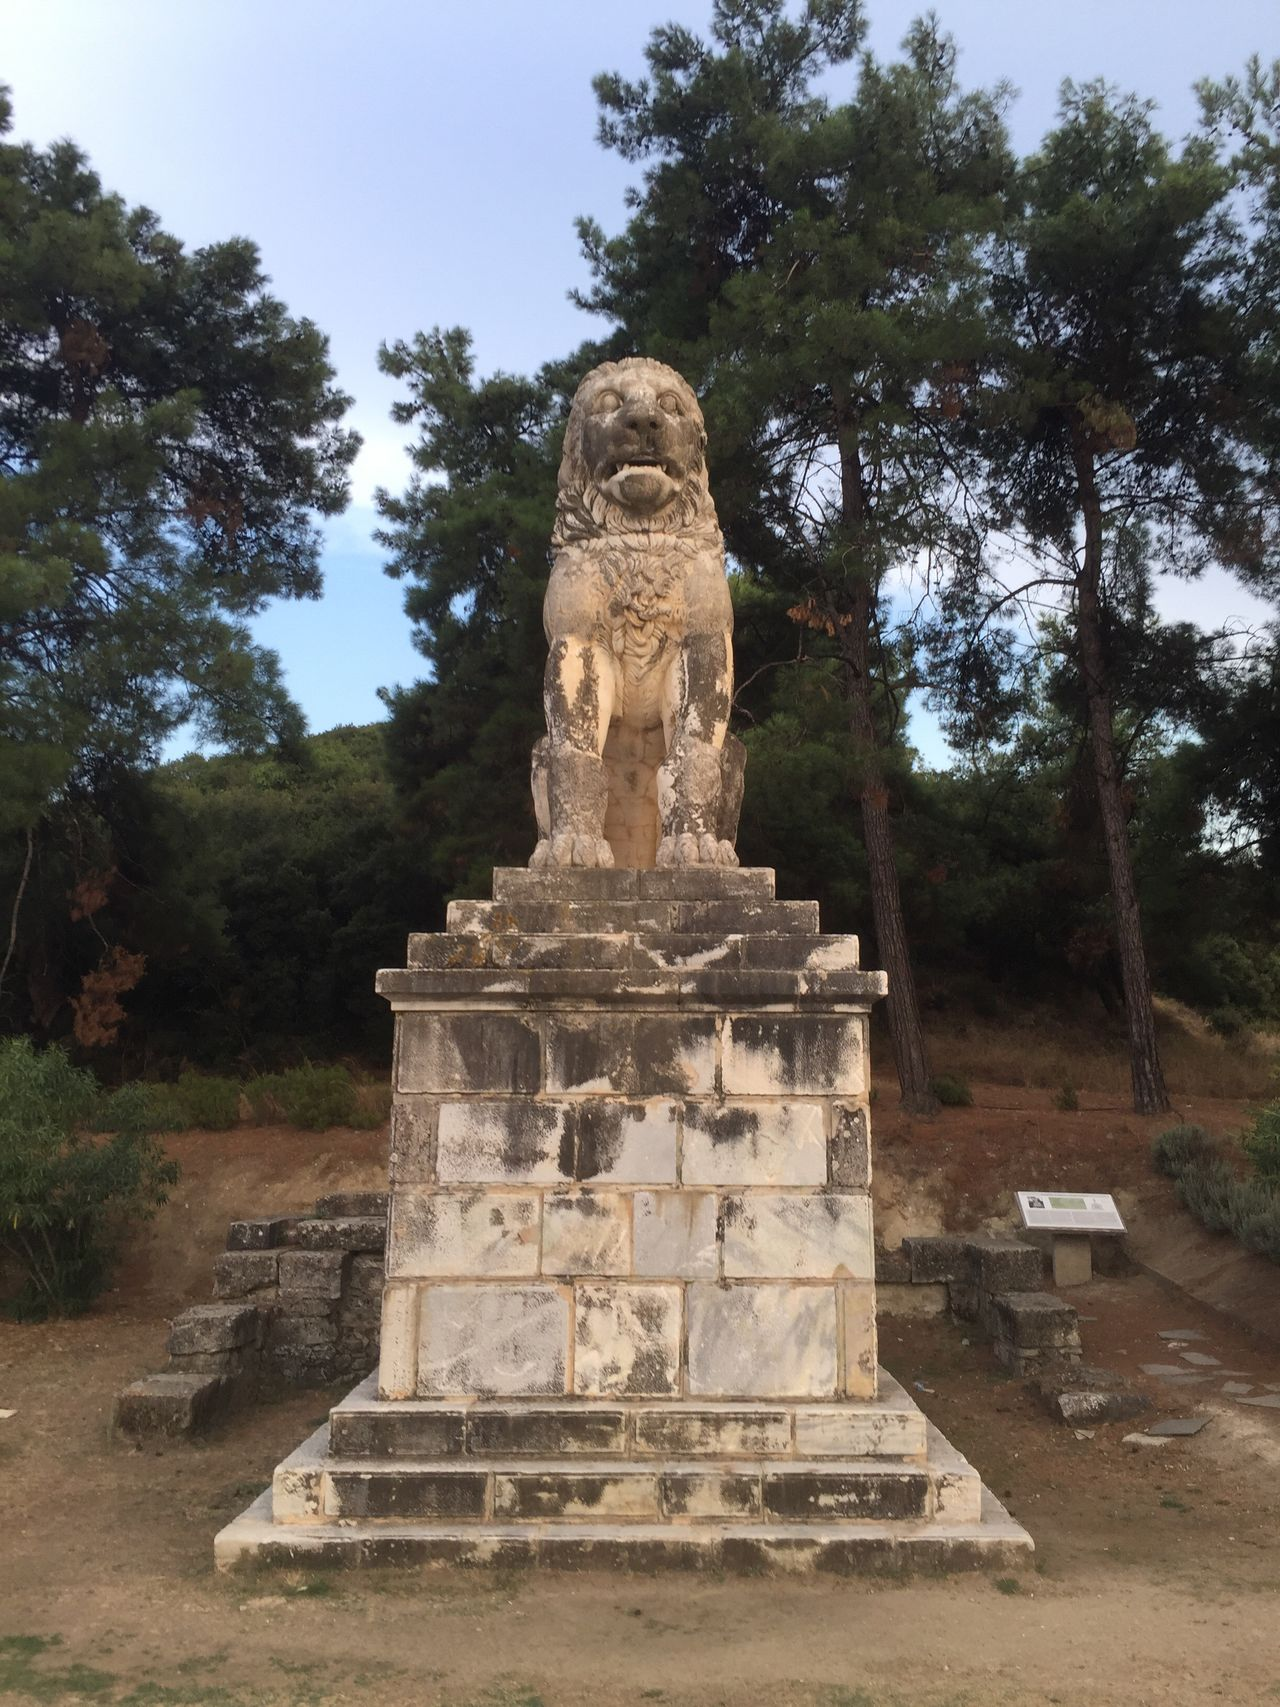 And Lion of Amphipolis one again. Greece Photos Statue Sculpture Memorial Tombstone Place Of Burial Memories Hystorical Hystorical Place Animal Themes Animal Love Animal_collection Historical Monuments